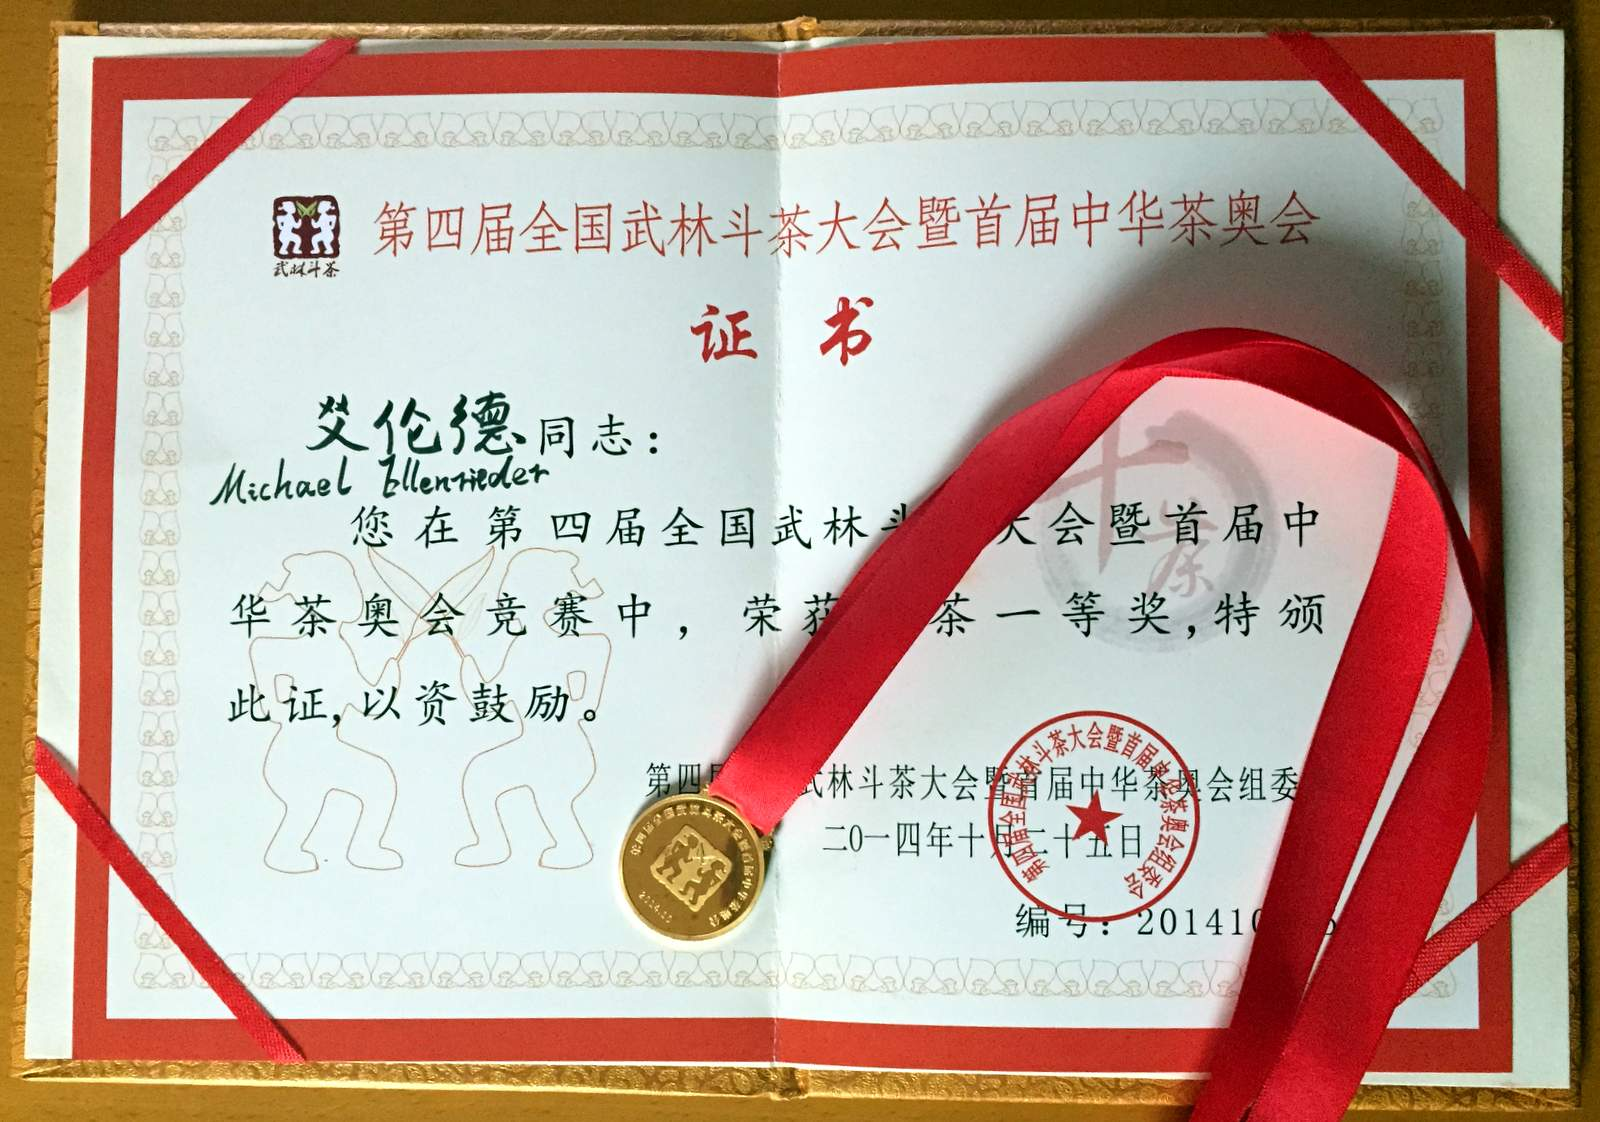 Won the 4th Chinese International Tea competition against 36 competitors